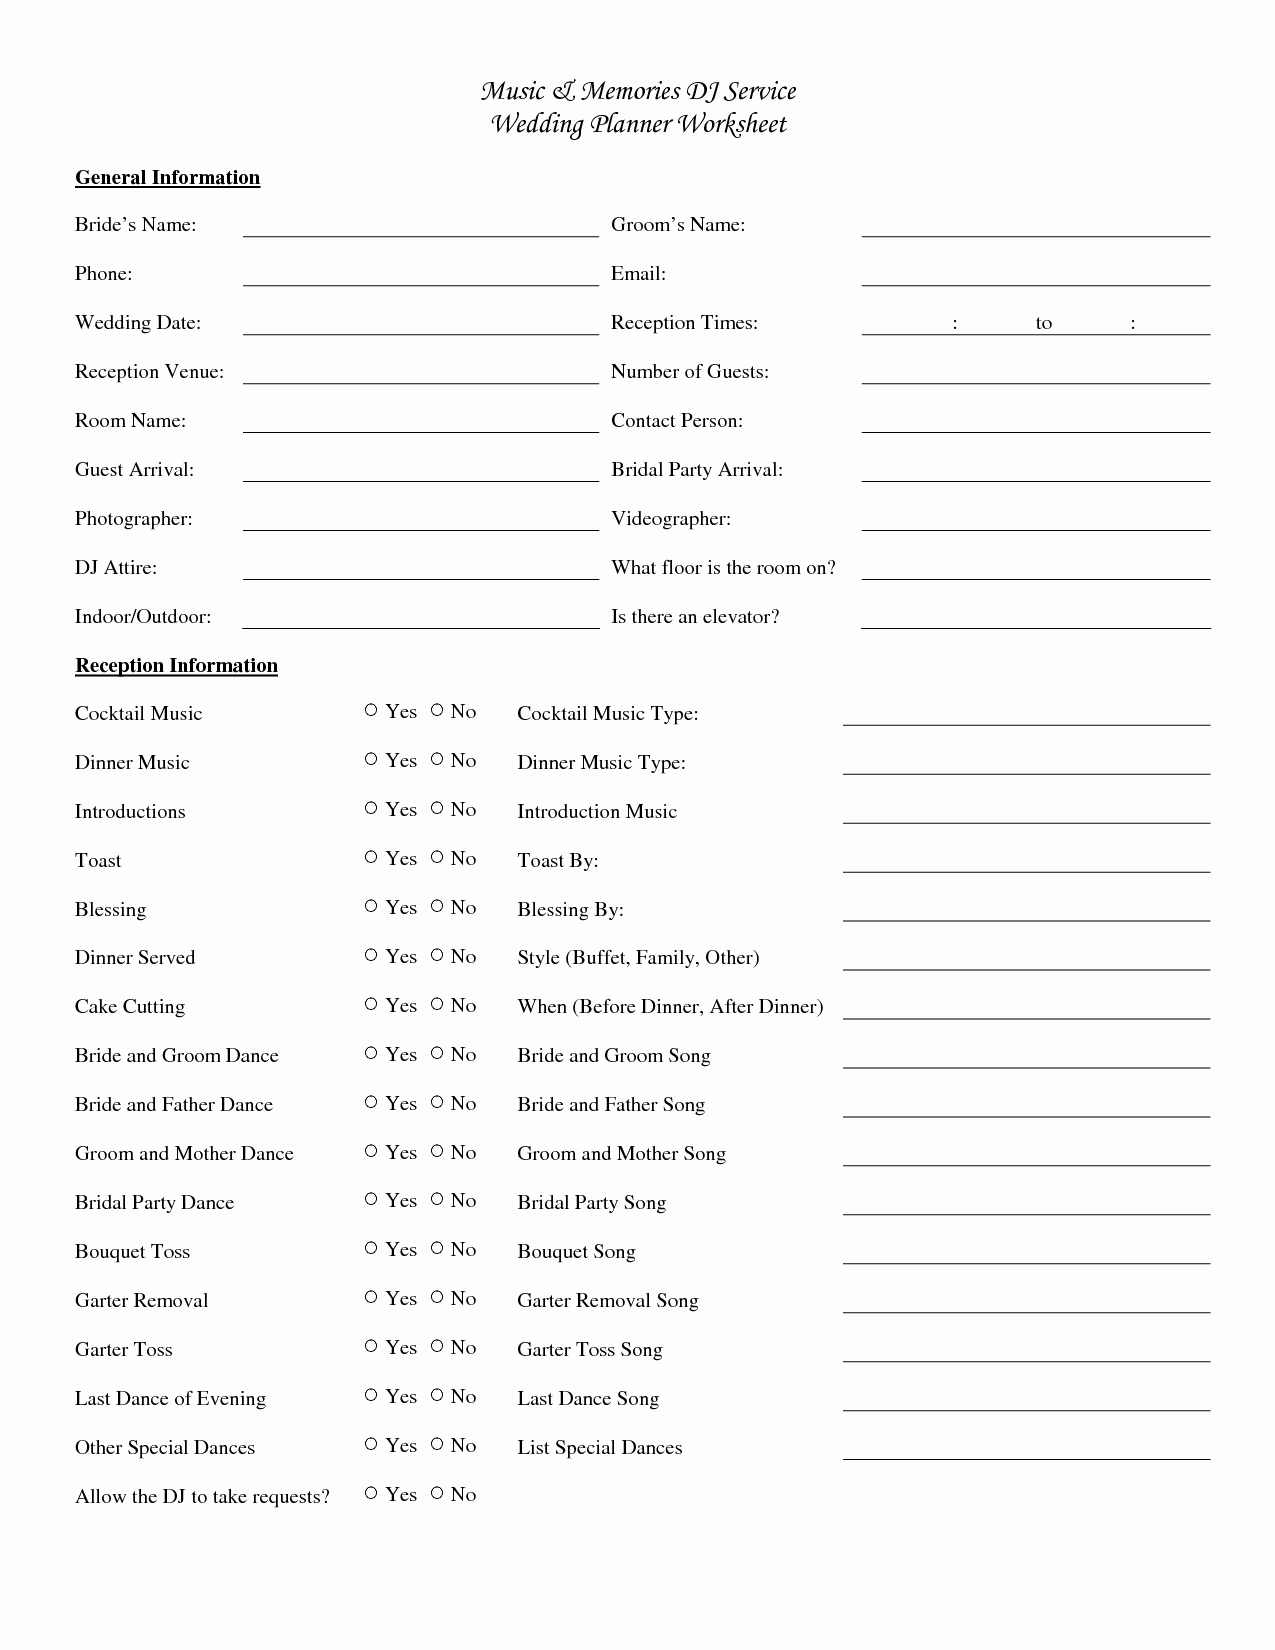 Wedding Party List Template Best Of Bridal Party List Template Portablegasgrillweber